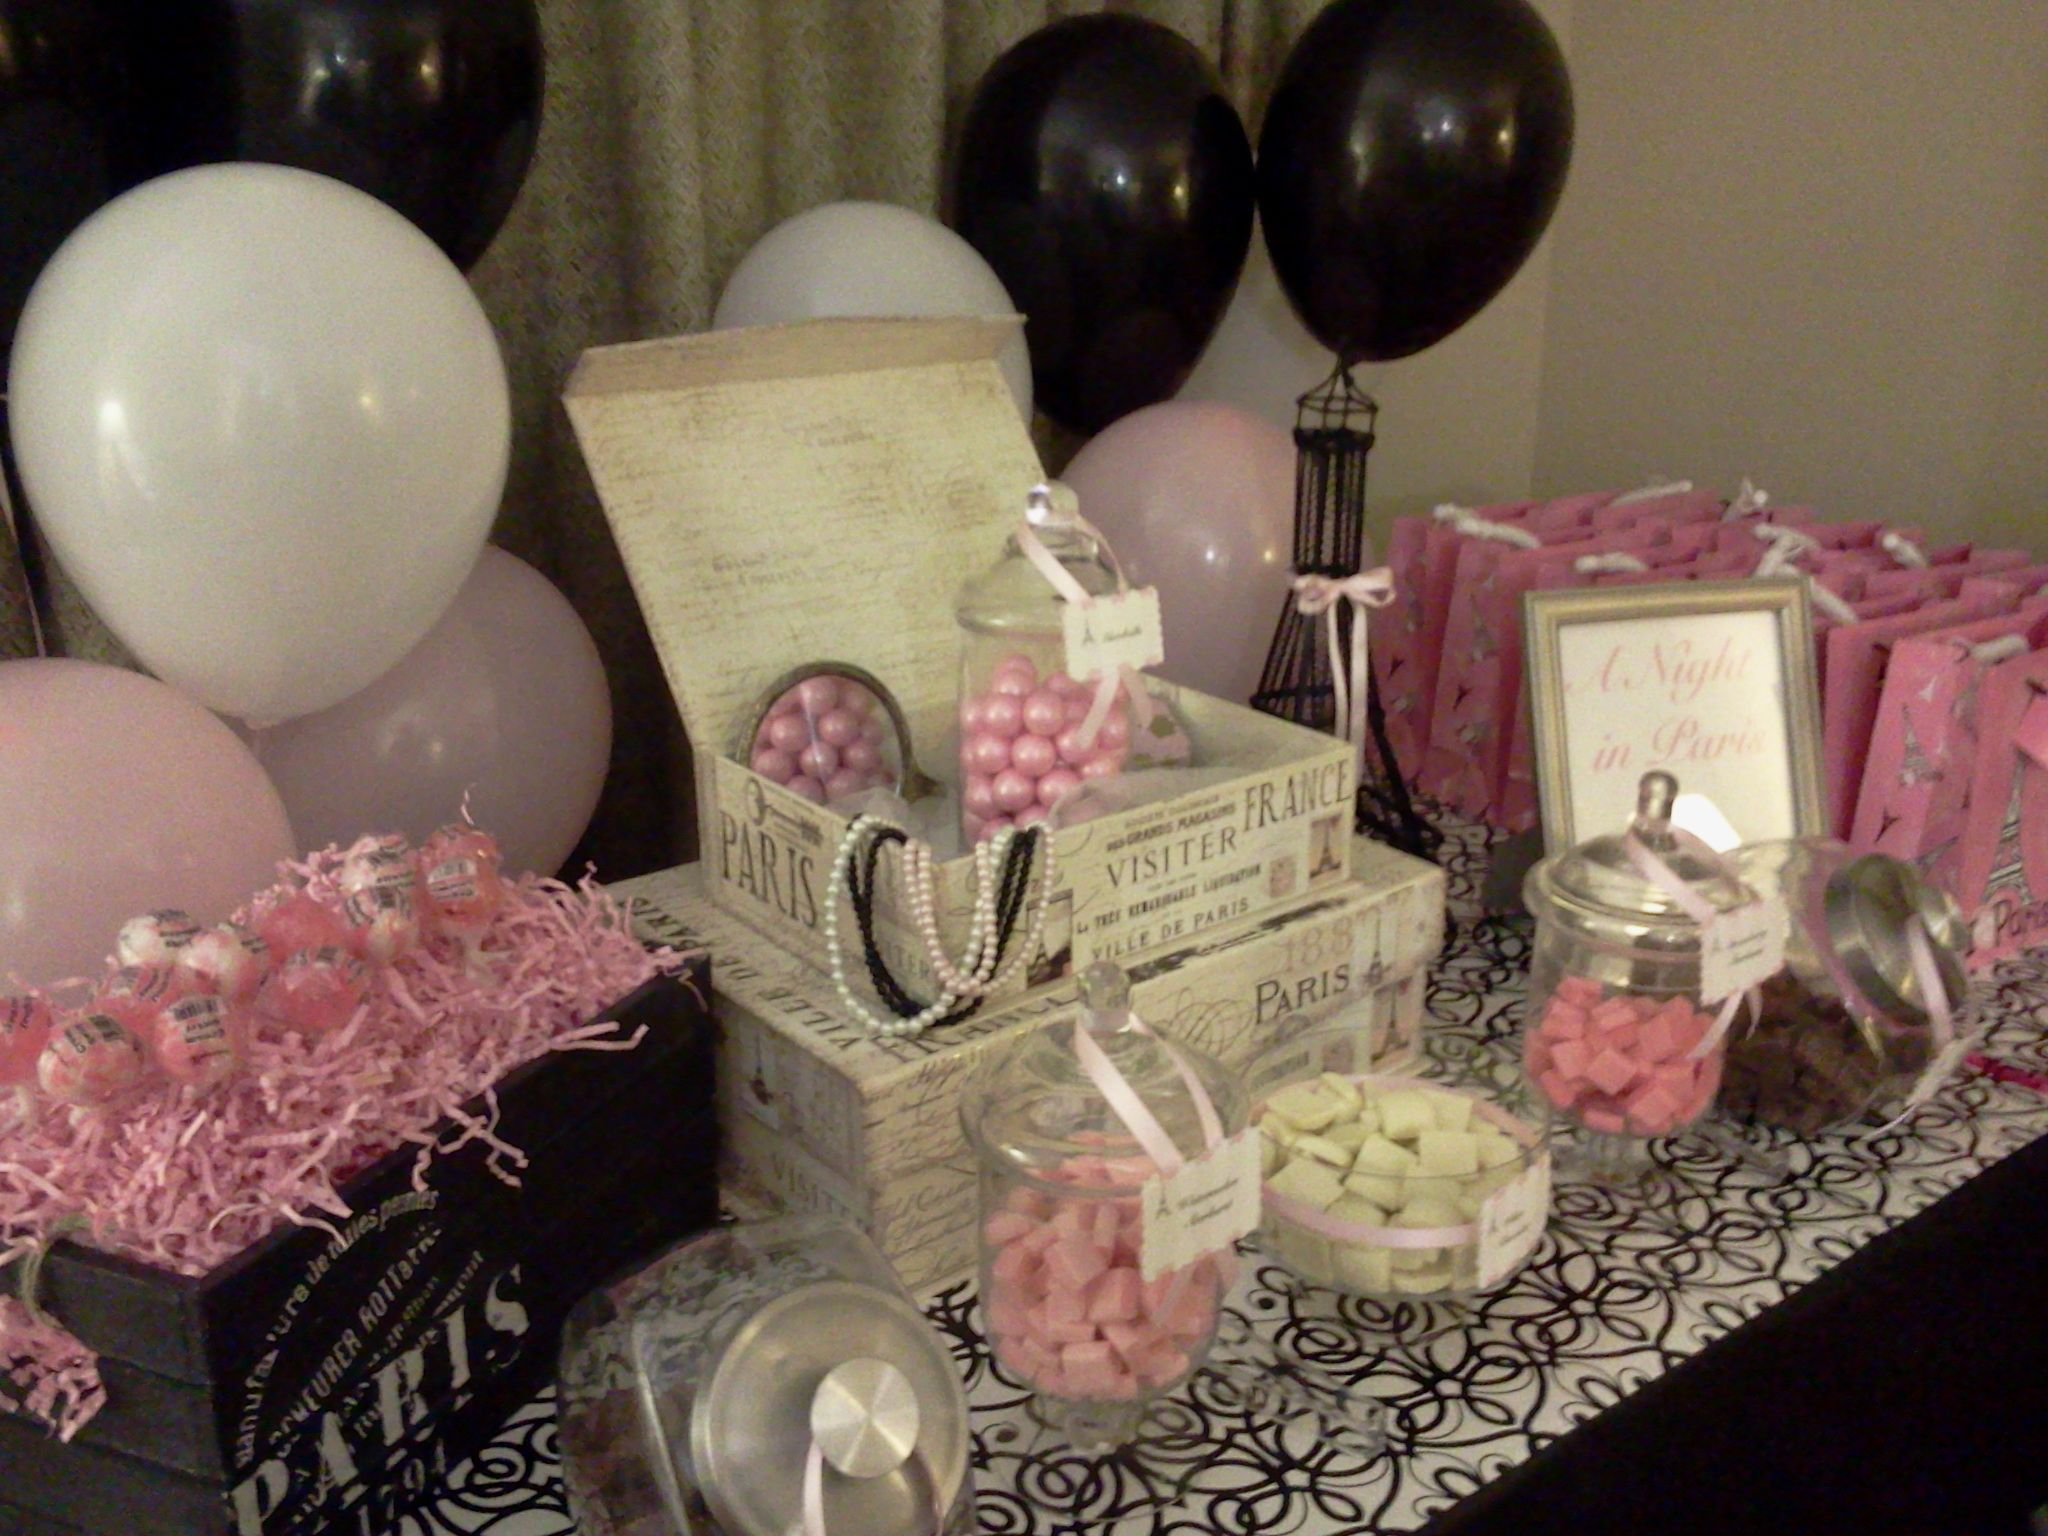 CharliesCandyBuffets Candy Buffet 2 Go Paris themed candy